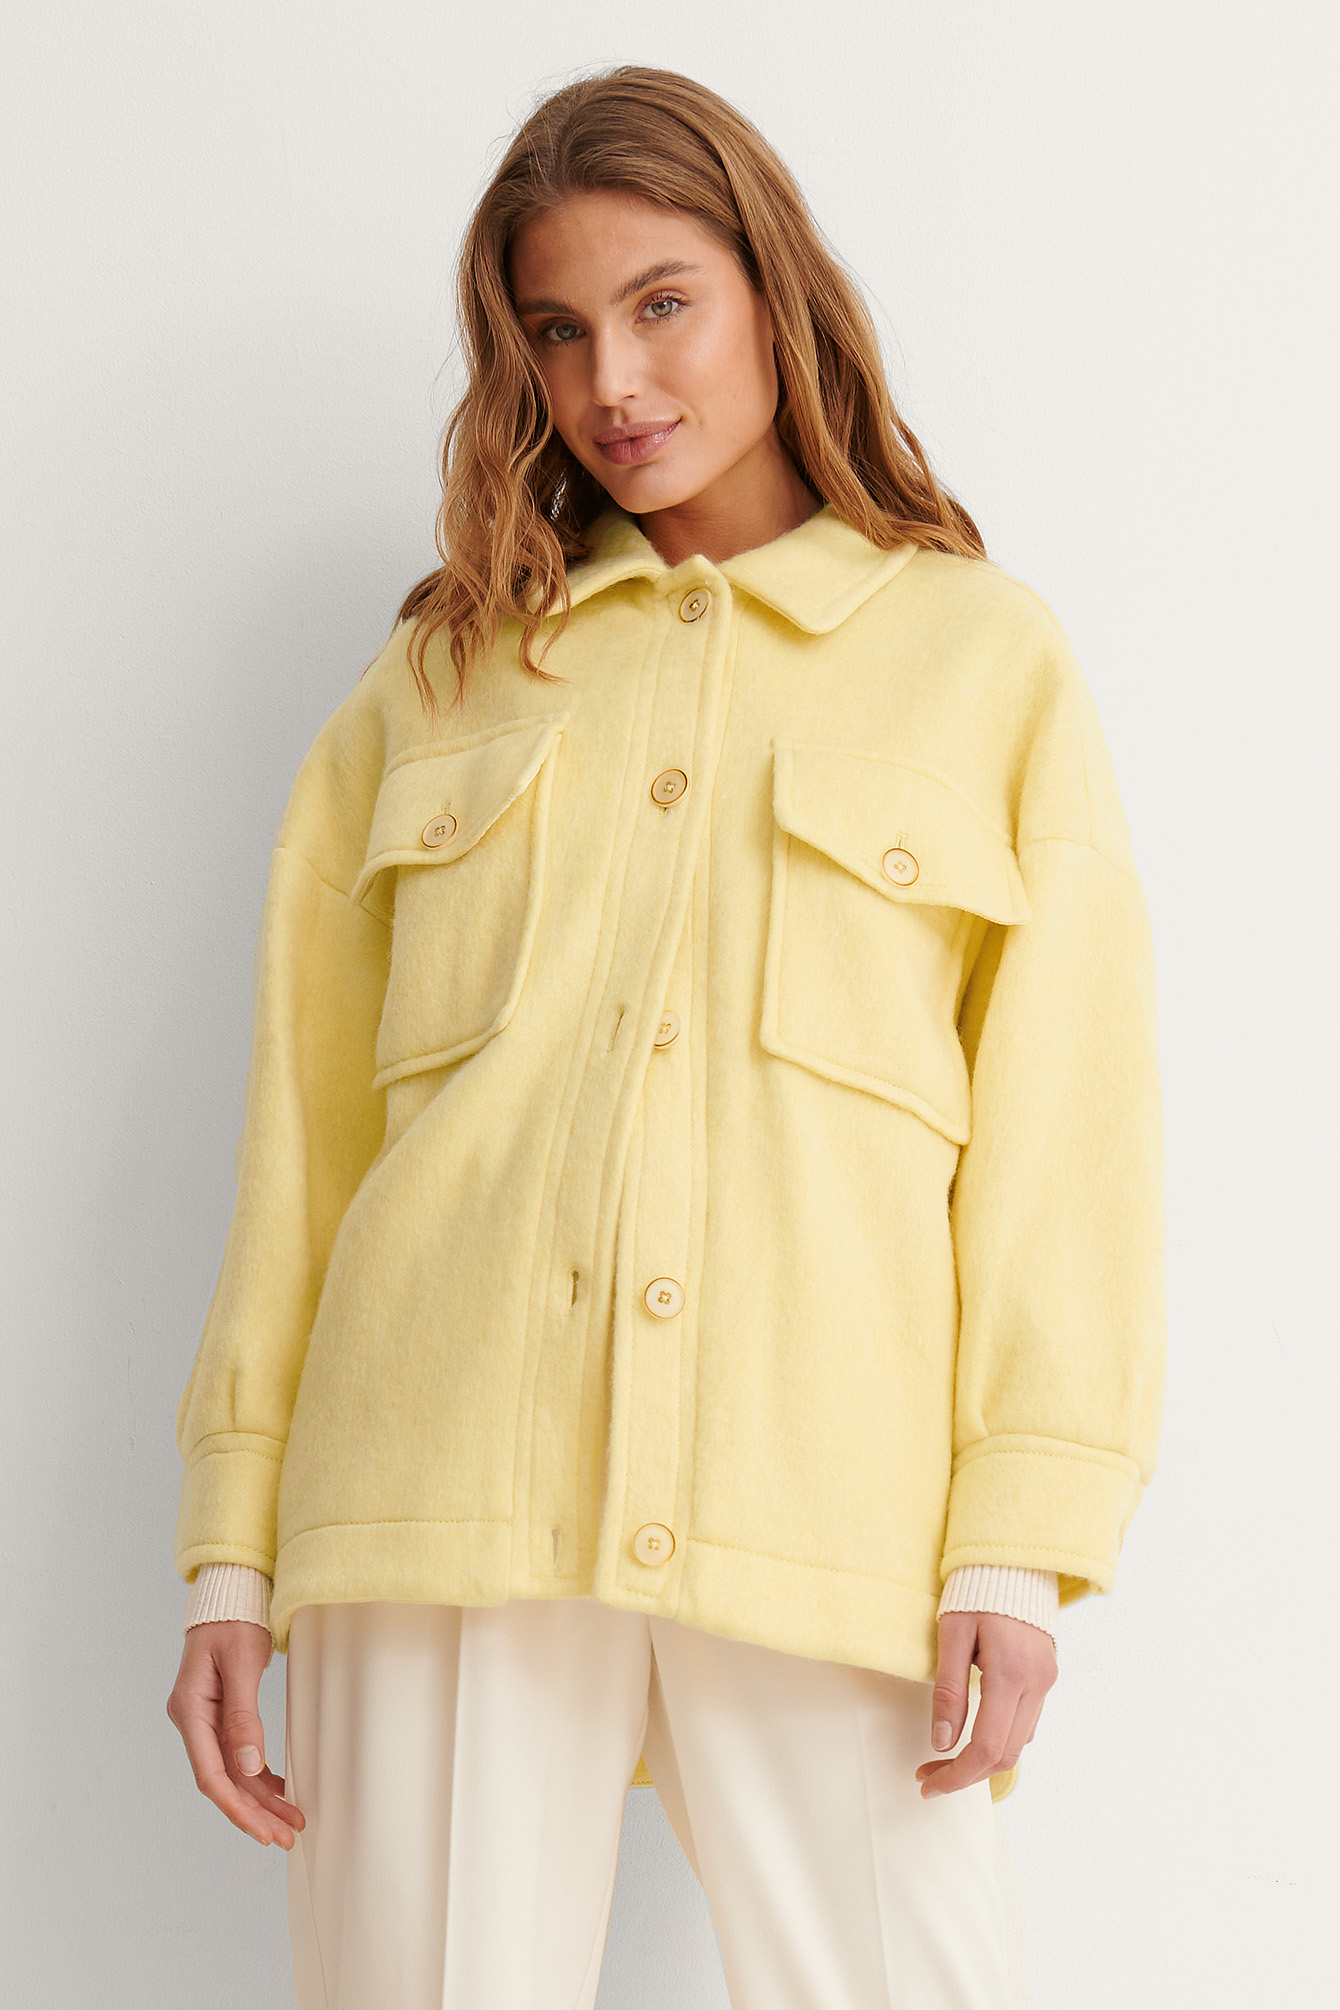 Pastel Yellow Country Jacket